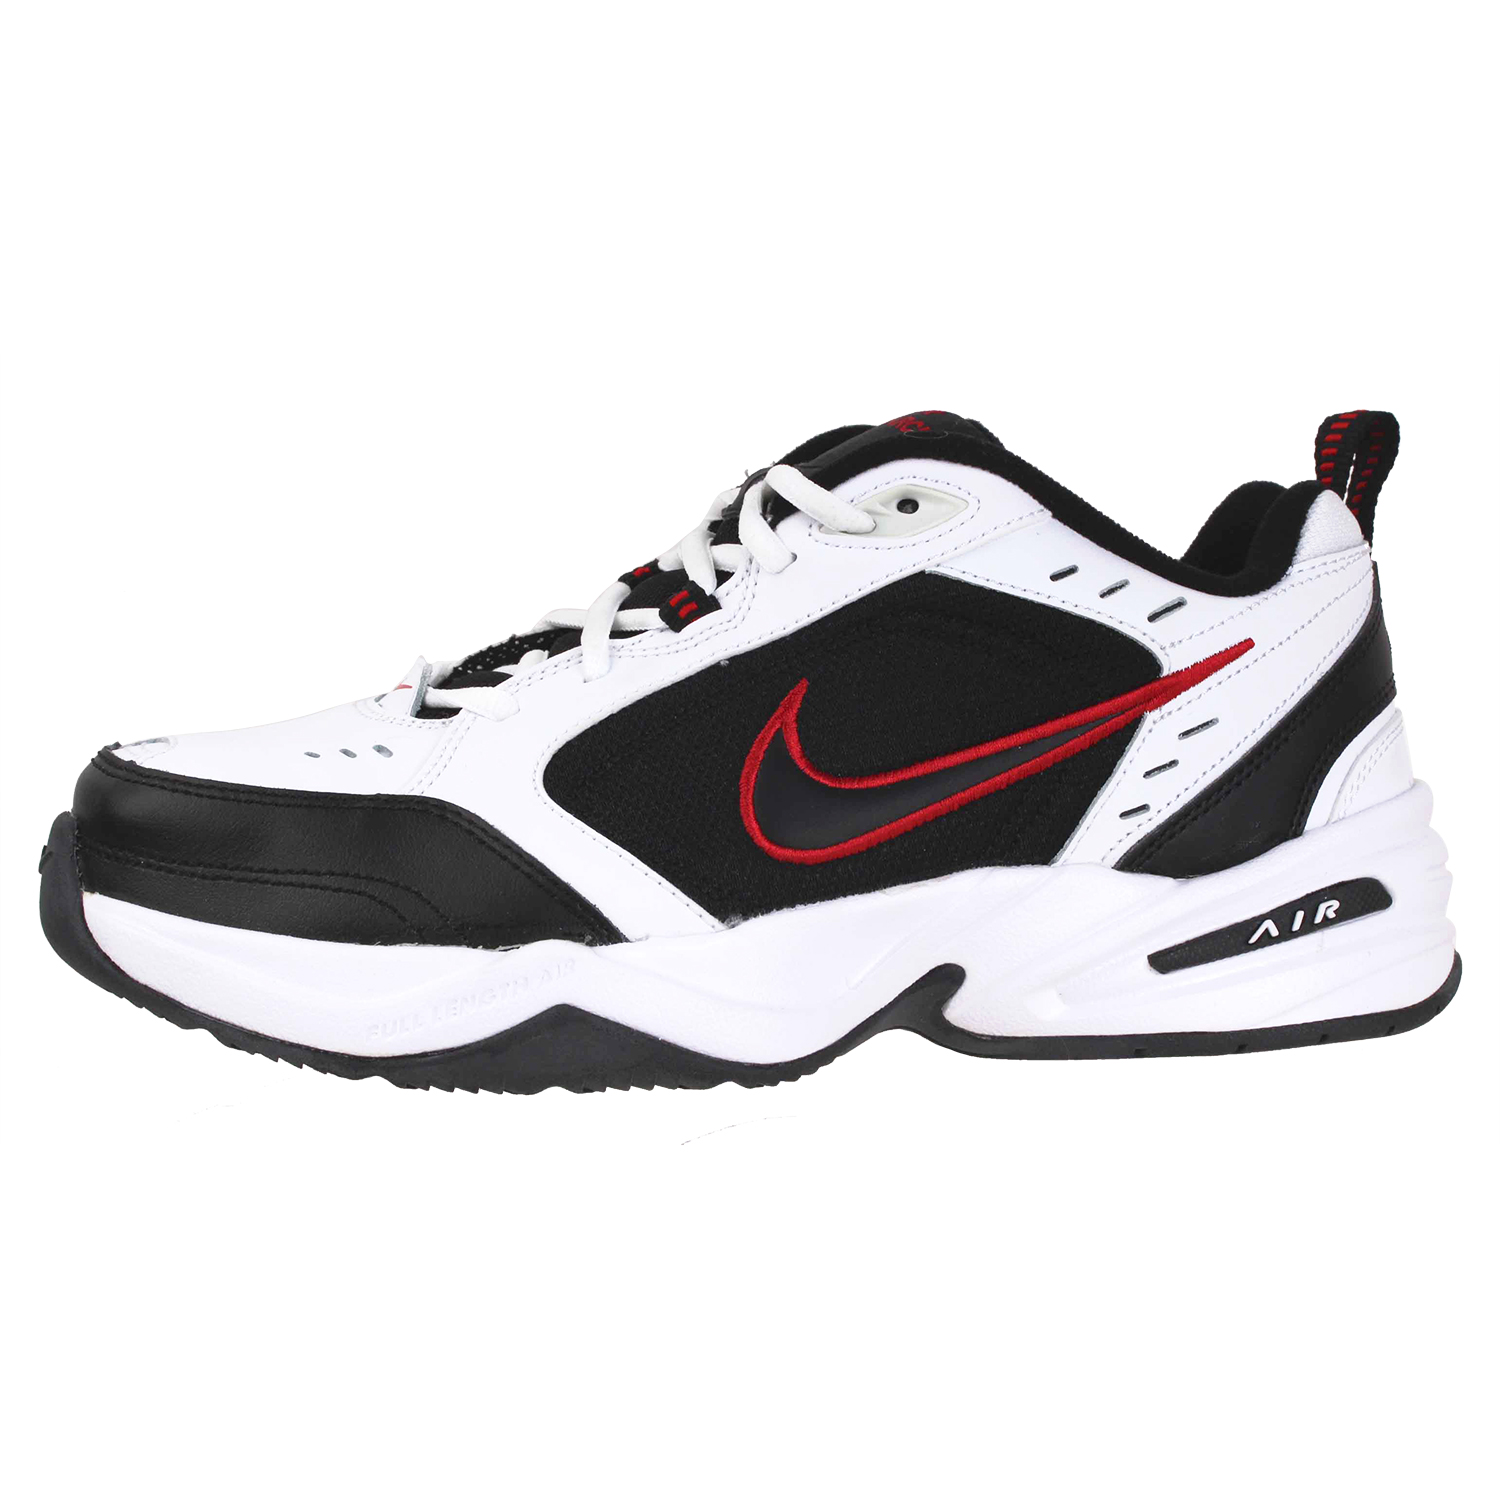 ab7838abd58 Details about Nike Men s Air Monarch IV Training Shoes 416355-101-7E  Wht Blk Red Size 7